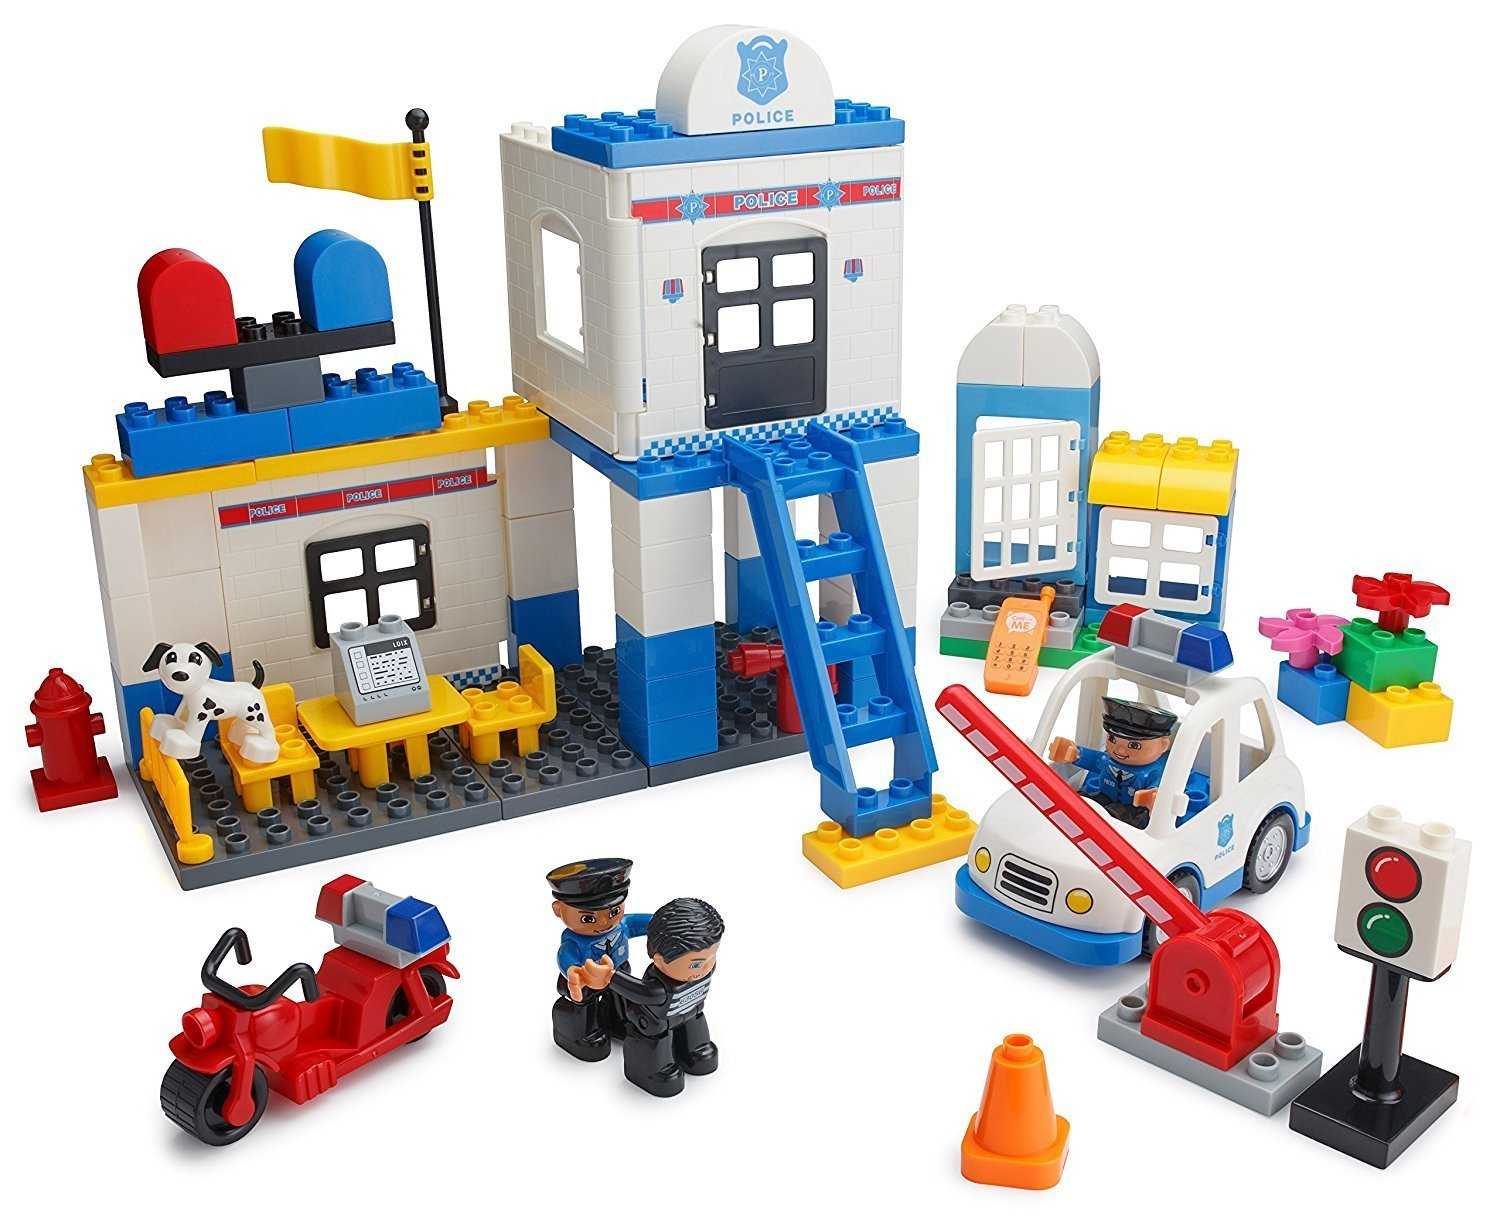 Play Build Police Station Building Blocks Set – 95 Pieces – Includes Police Department, Car, Motorcycle, Jail Cell, Police Officer & Robber Minifigures, Dog & Accessories